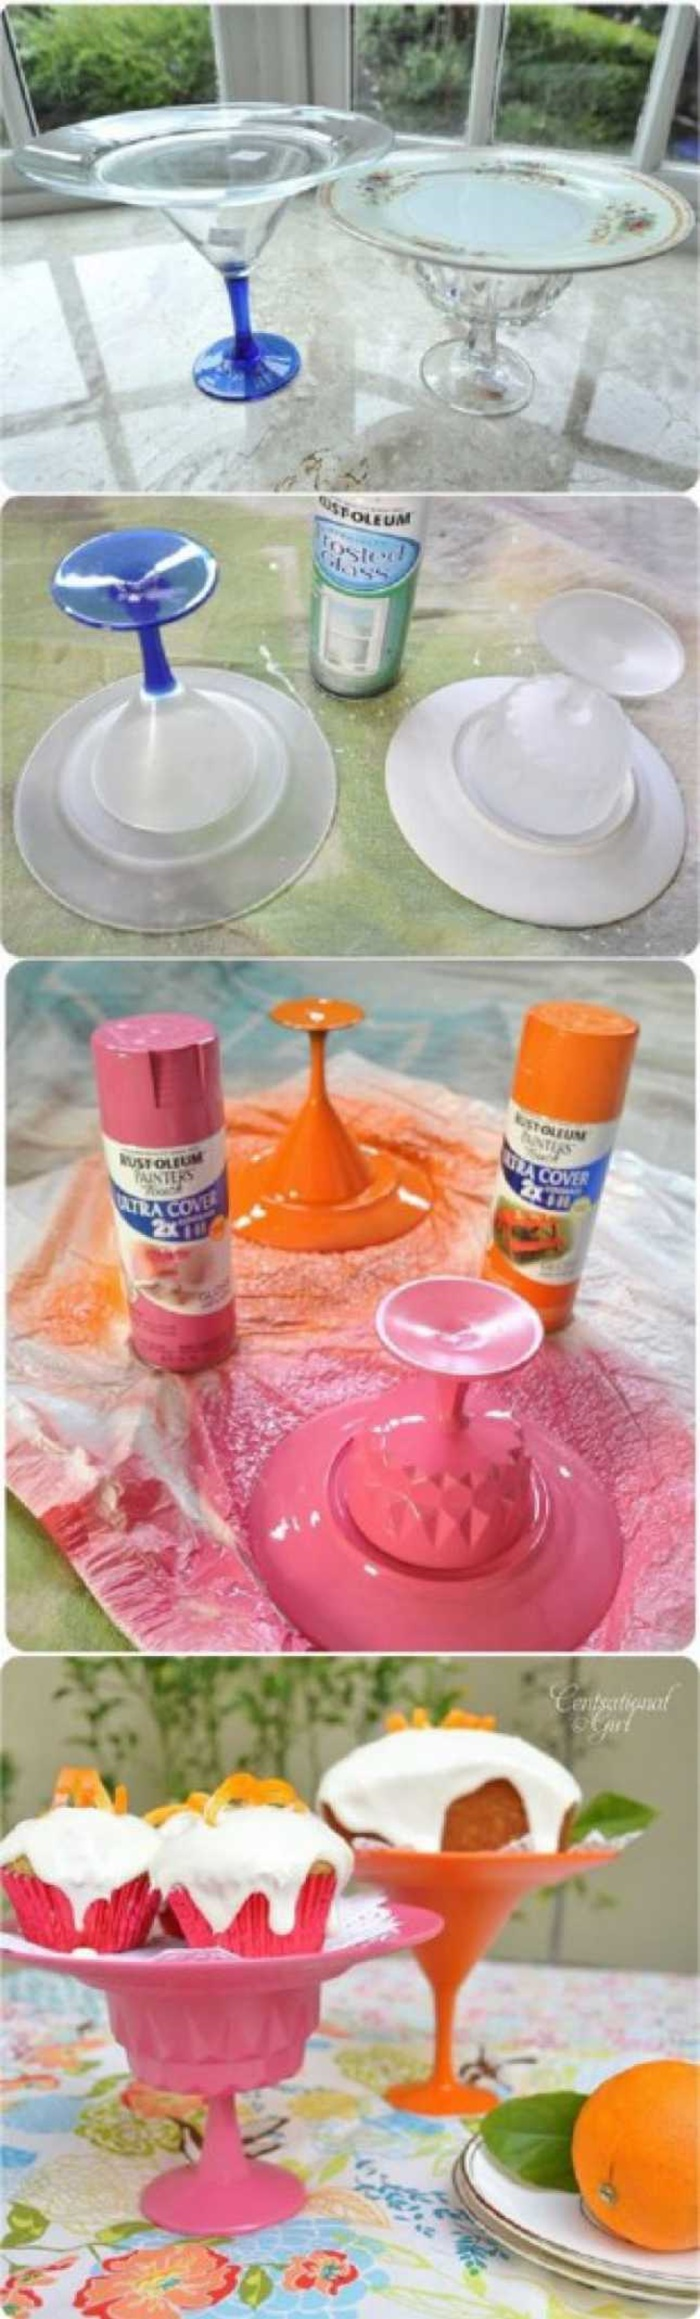 -amazing-Diy-Crafts-twenty-easy-and-practically-free-diy-crafts-that-will-inspire-you14